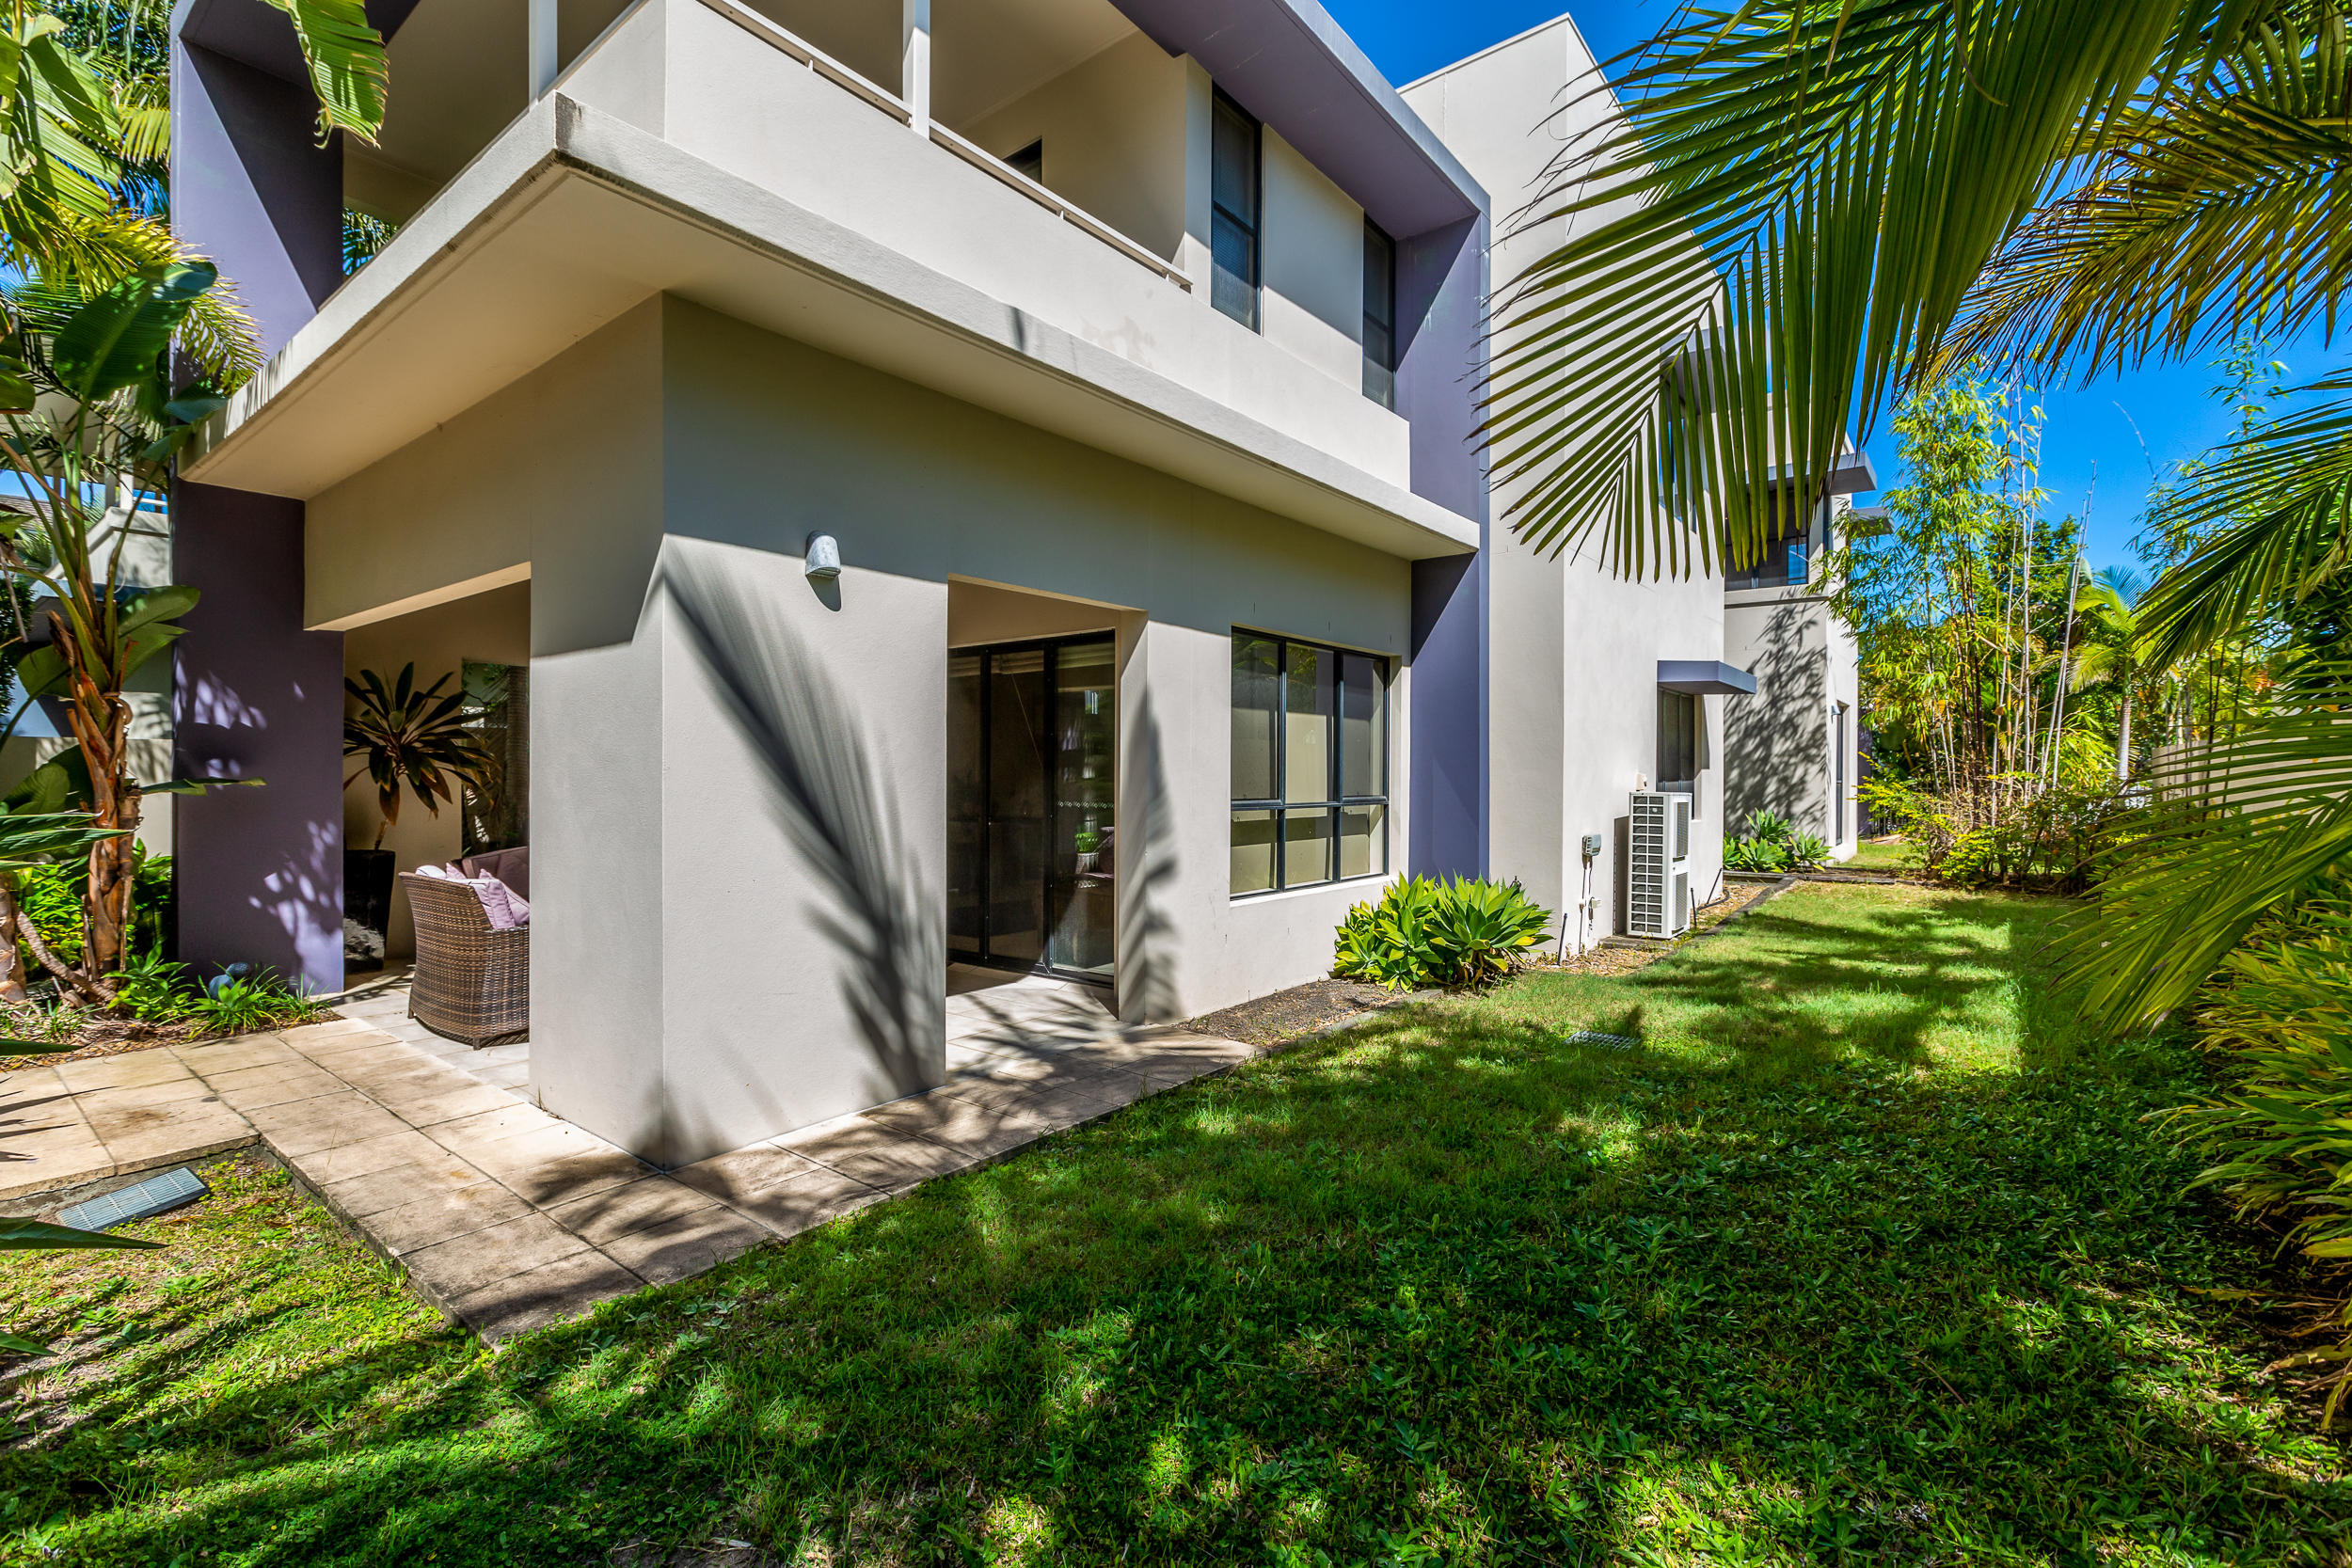 EXECUTIVE RESORT LIVING WITH THIS 4 BEDROOM AIR CONDITIONED HOME.